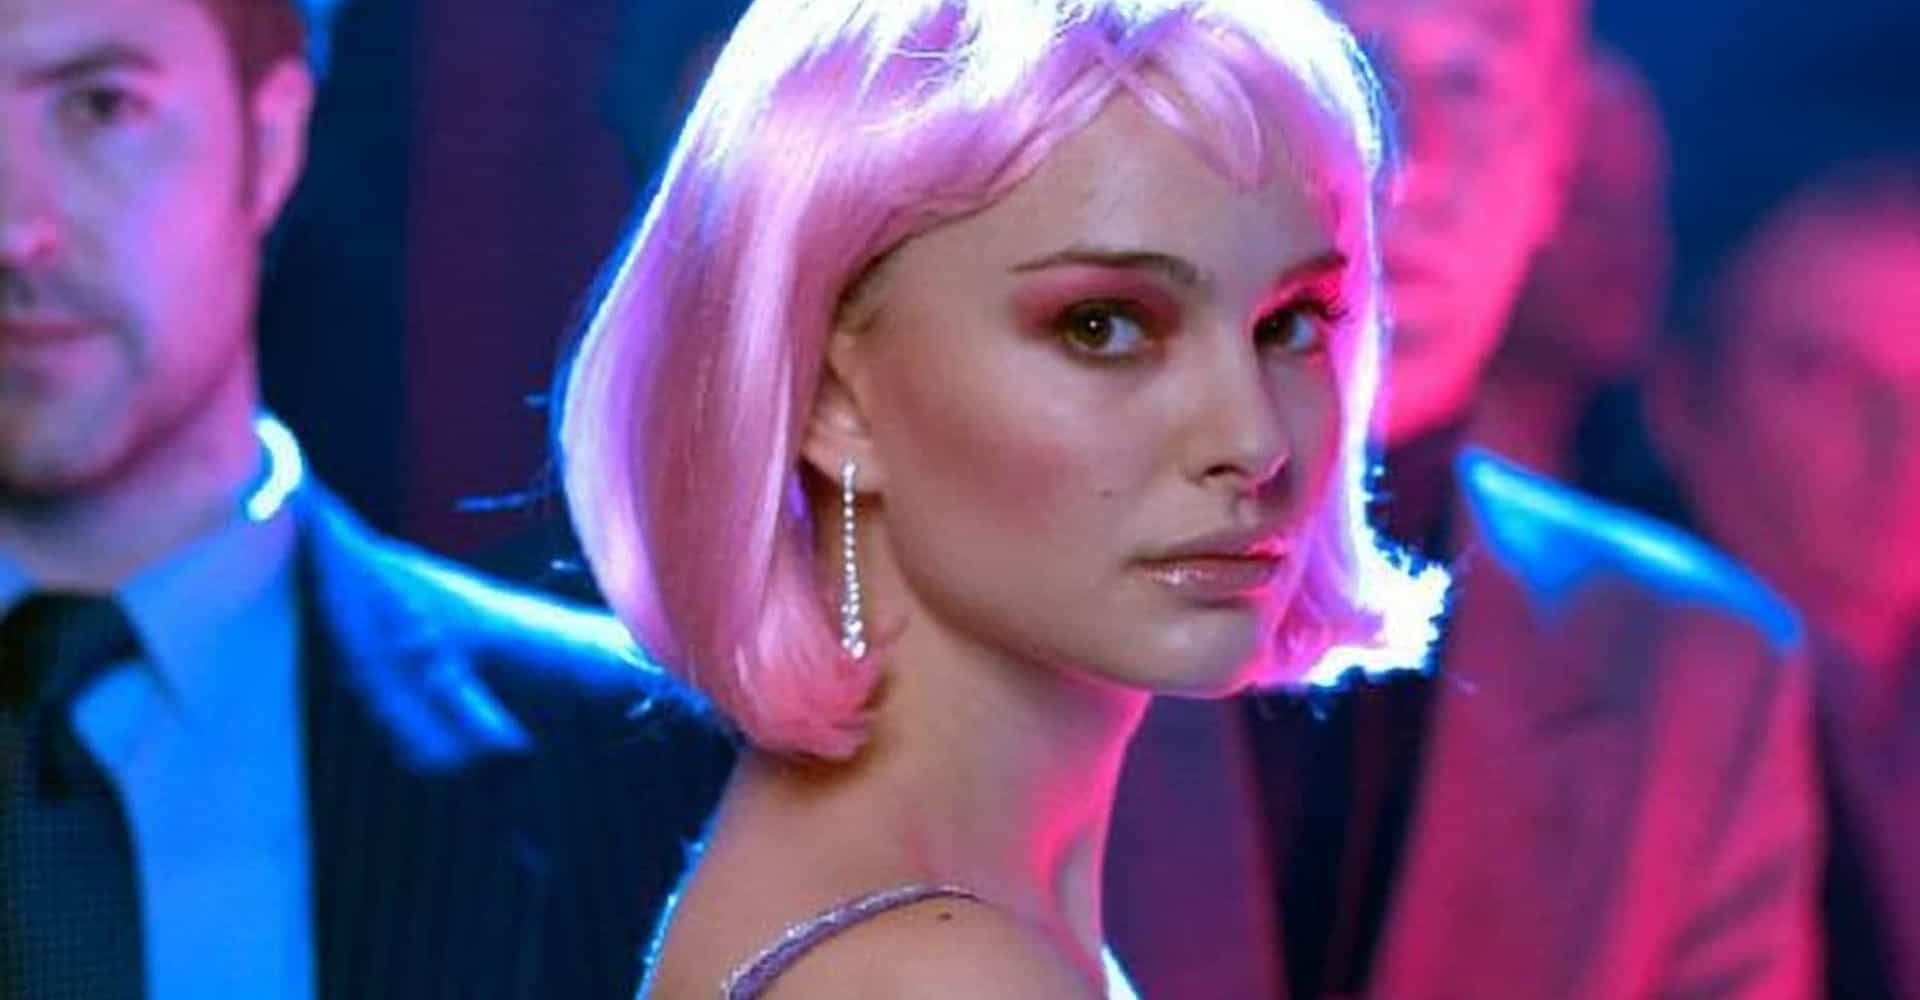 Looking back on Natalie Portman's best and worst movies